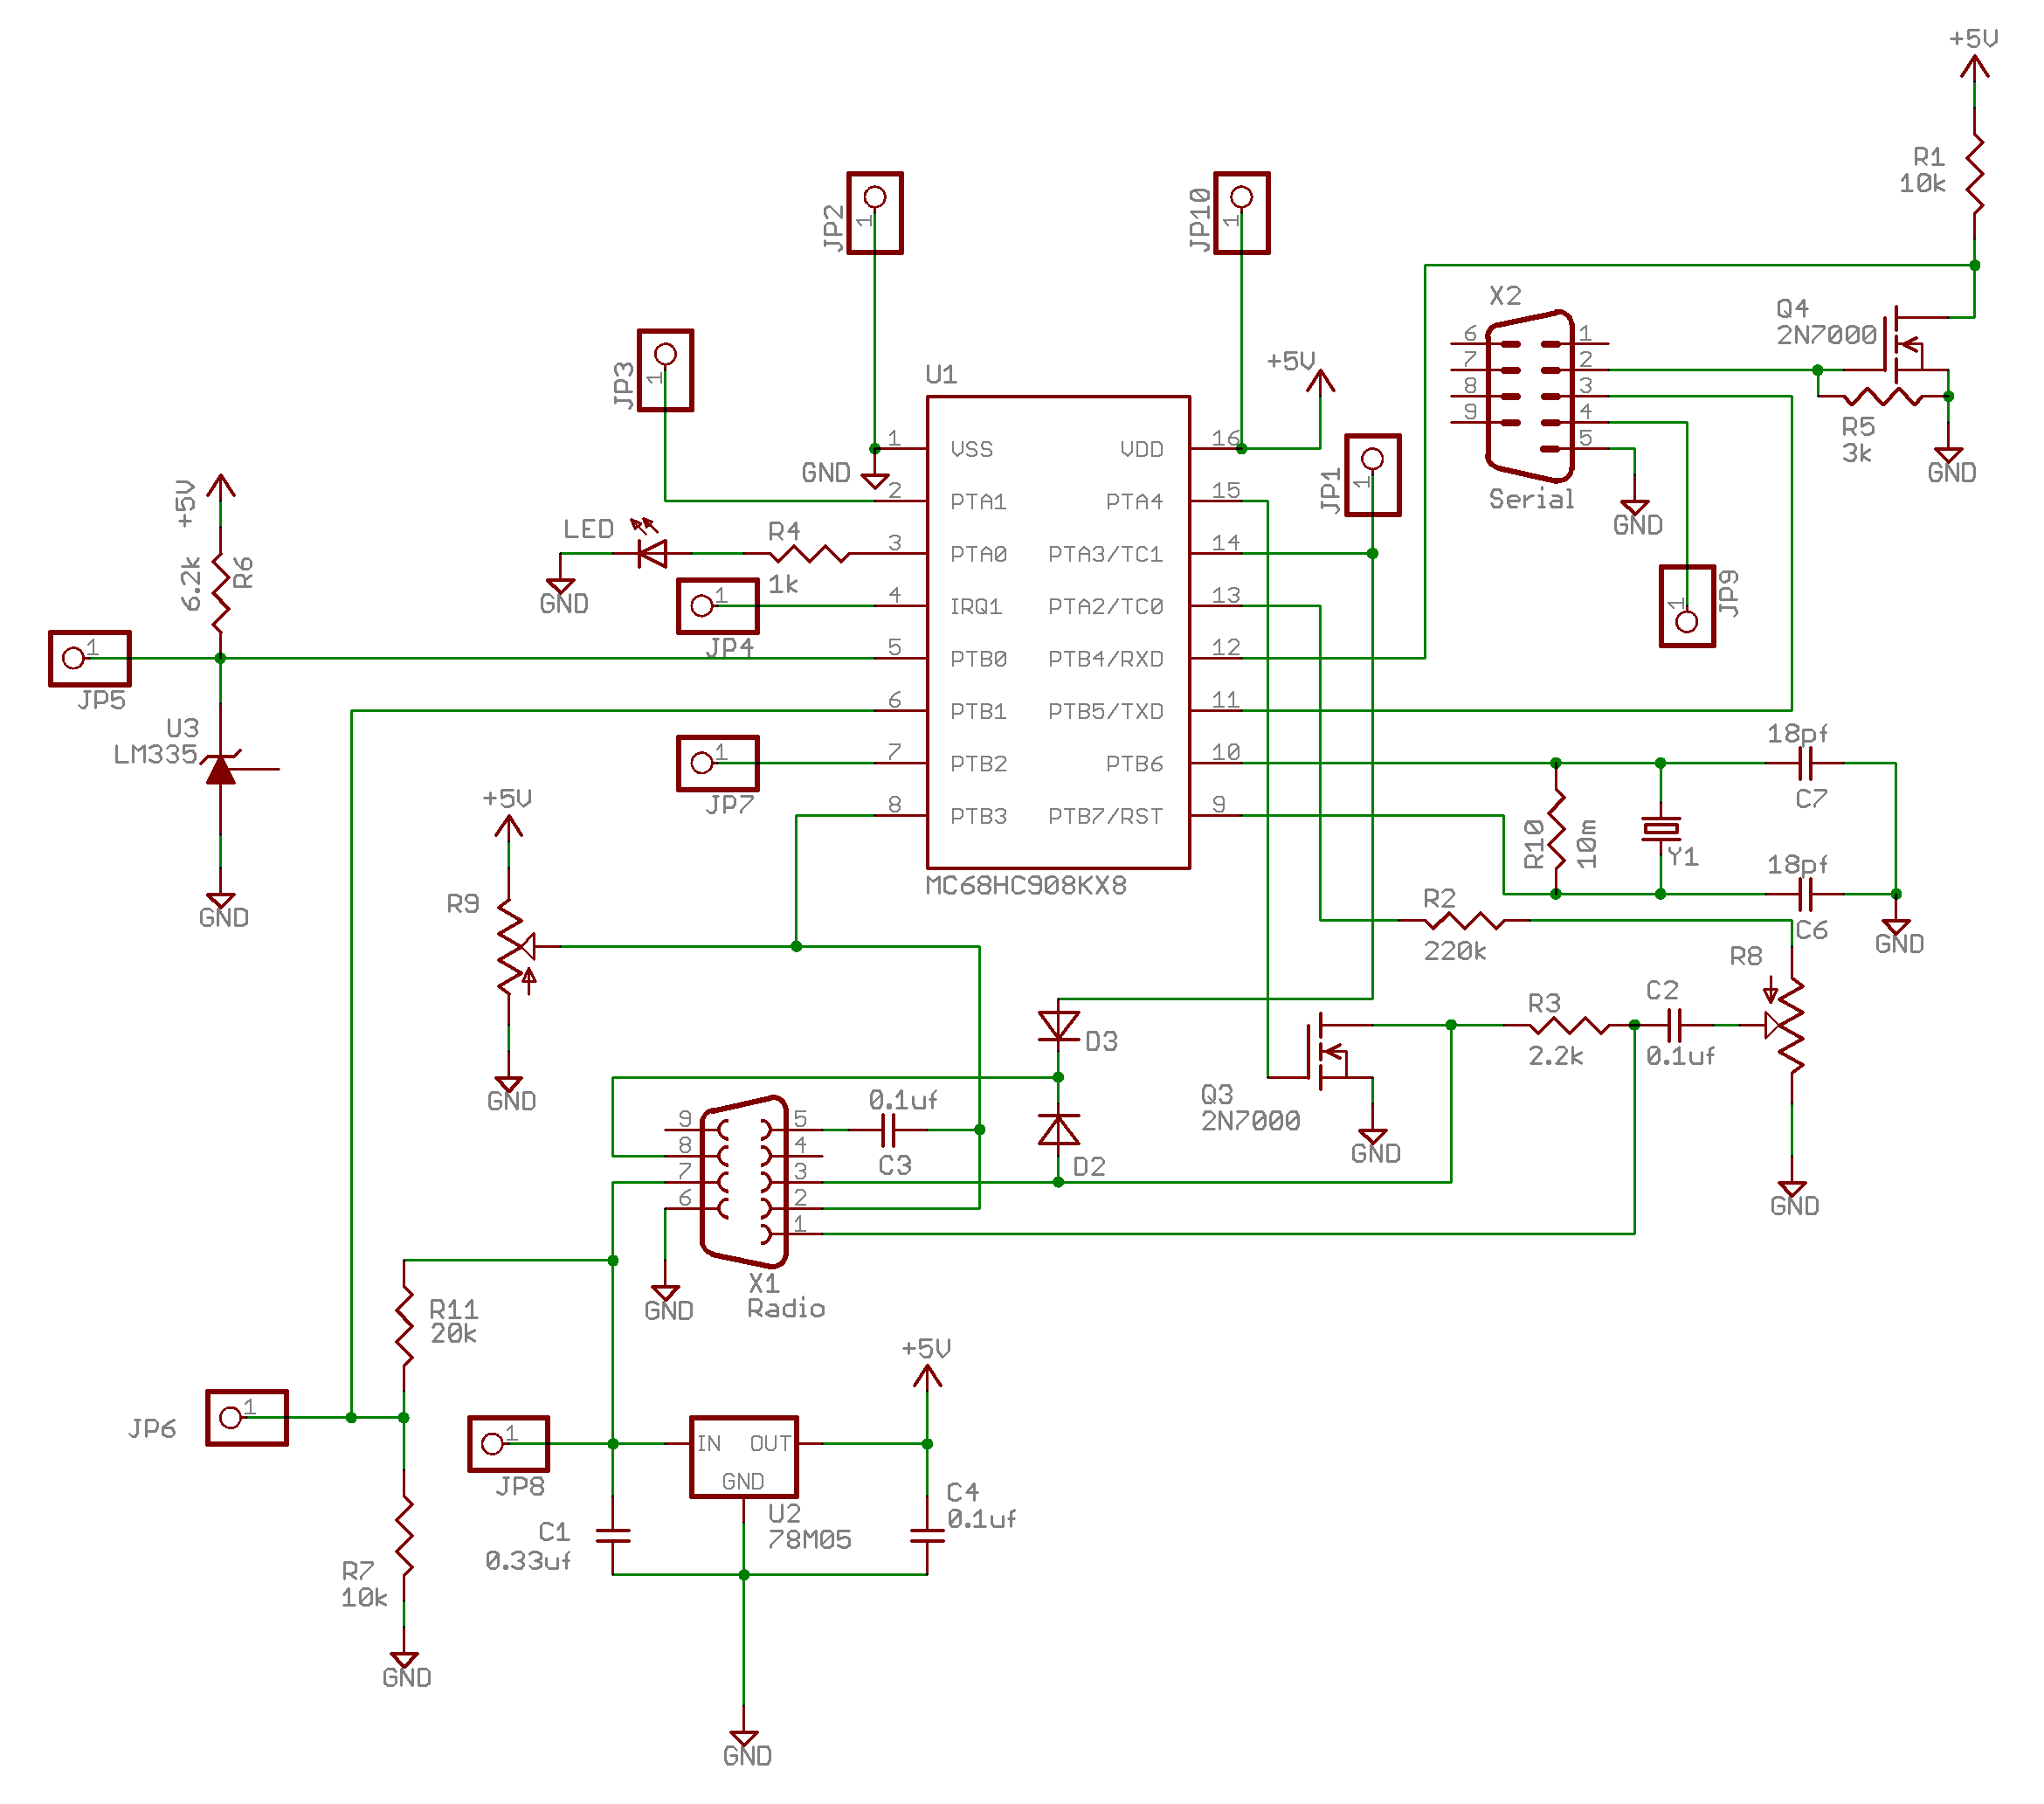 Sound Detection From Stereo Plug Detector Using Lm324 I